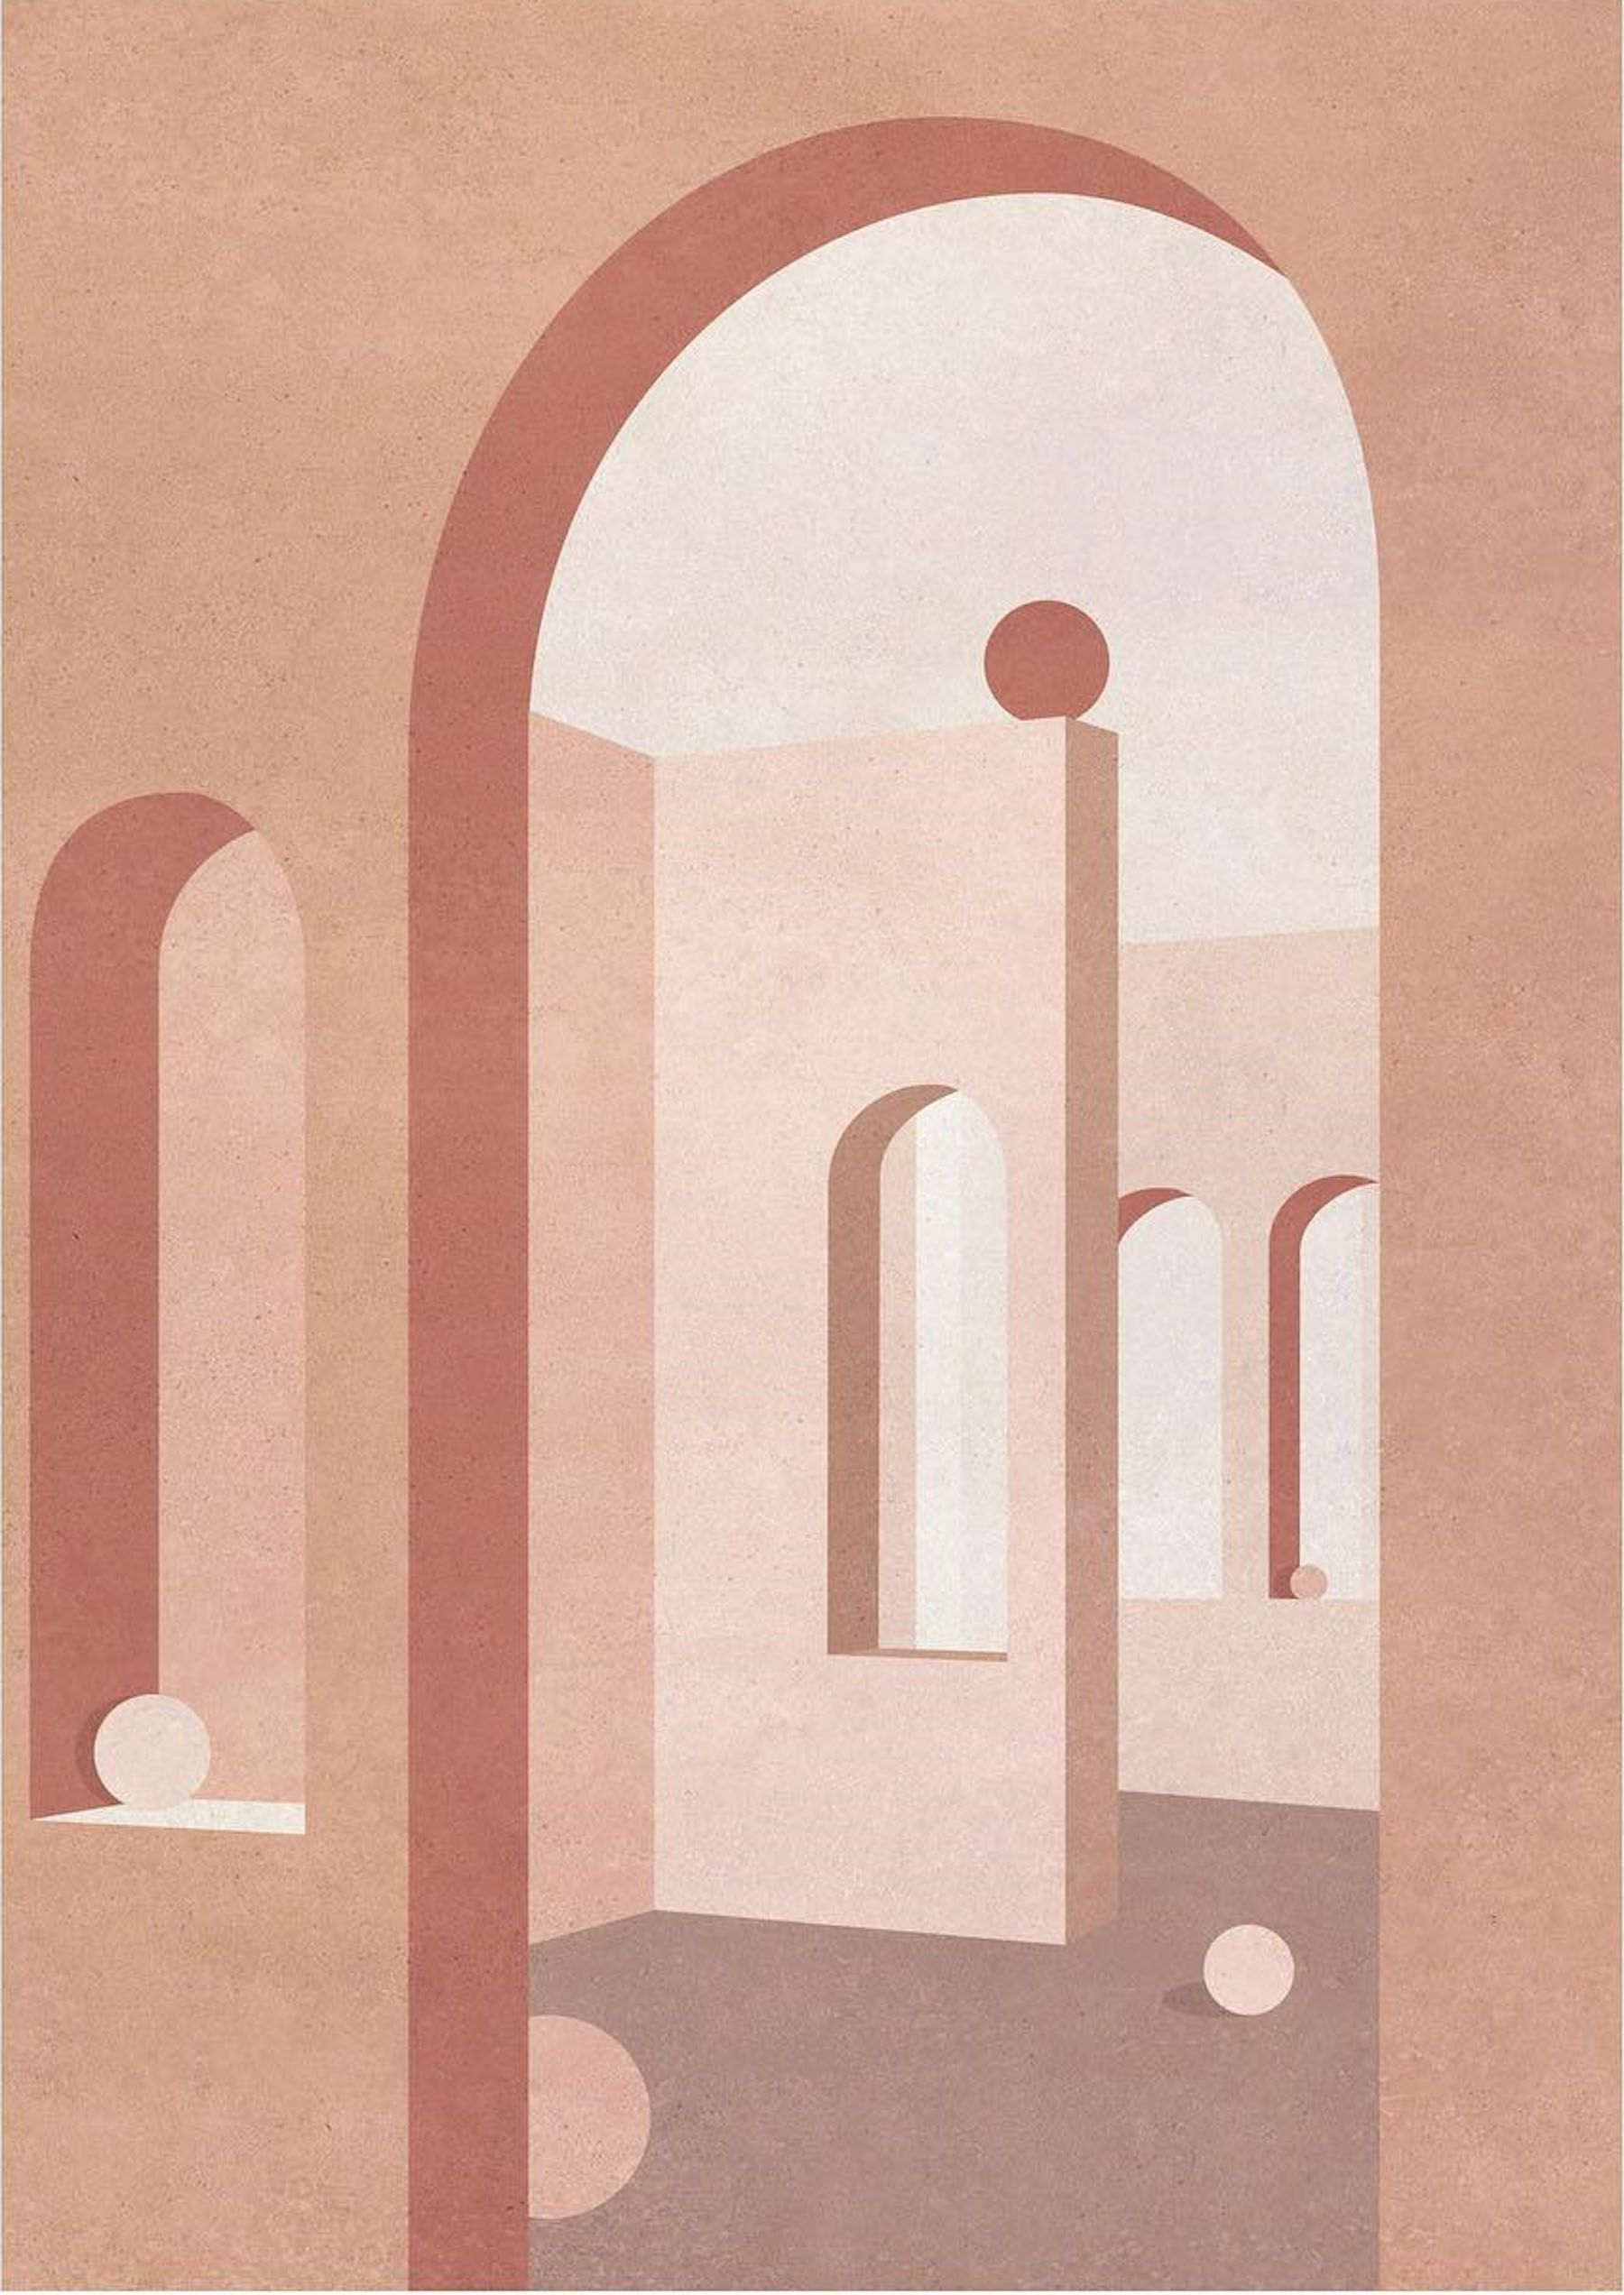 Charlotte Taylor's Architecturally Inspired Paintings - IGNANT